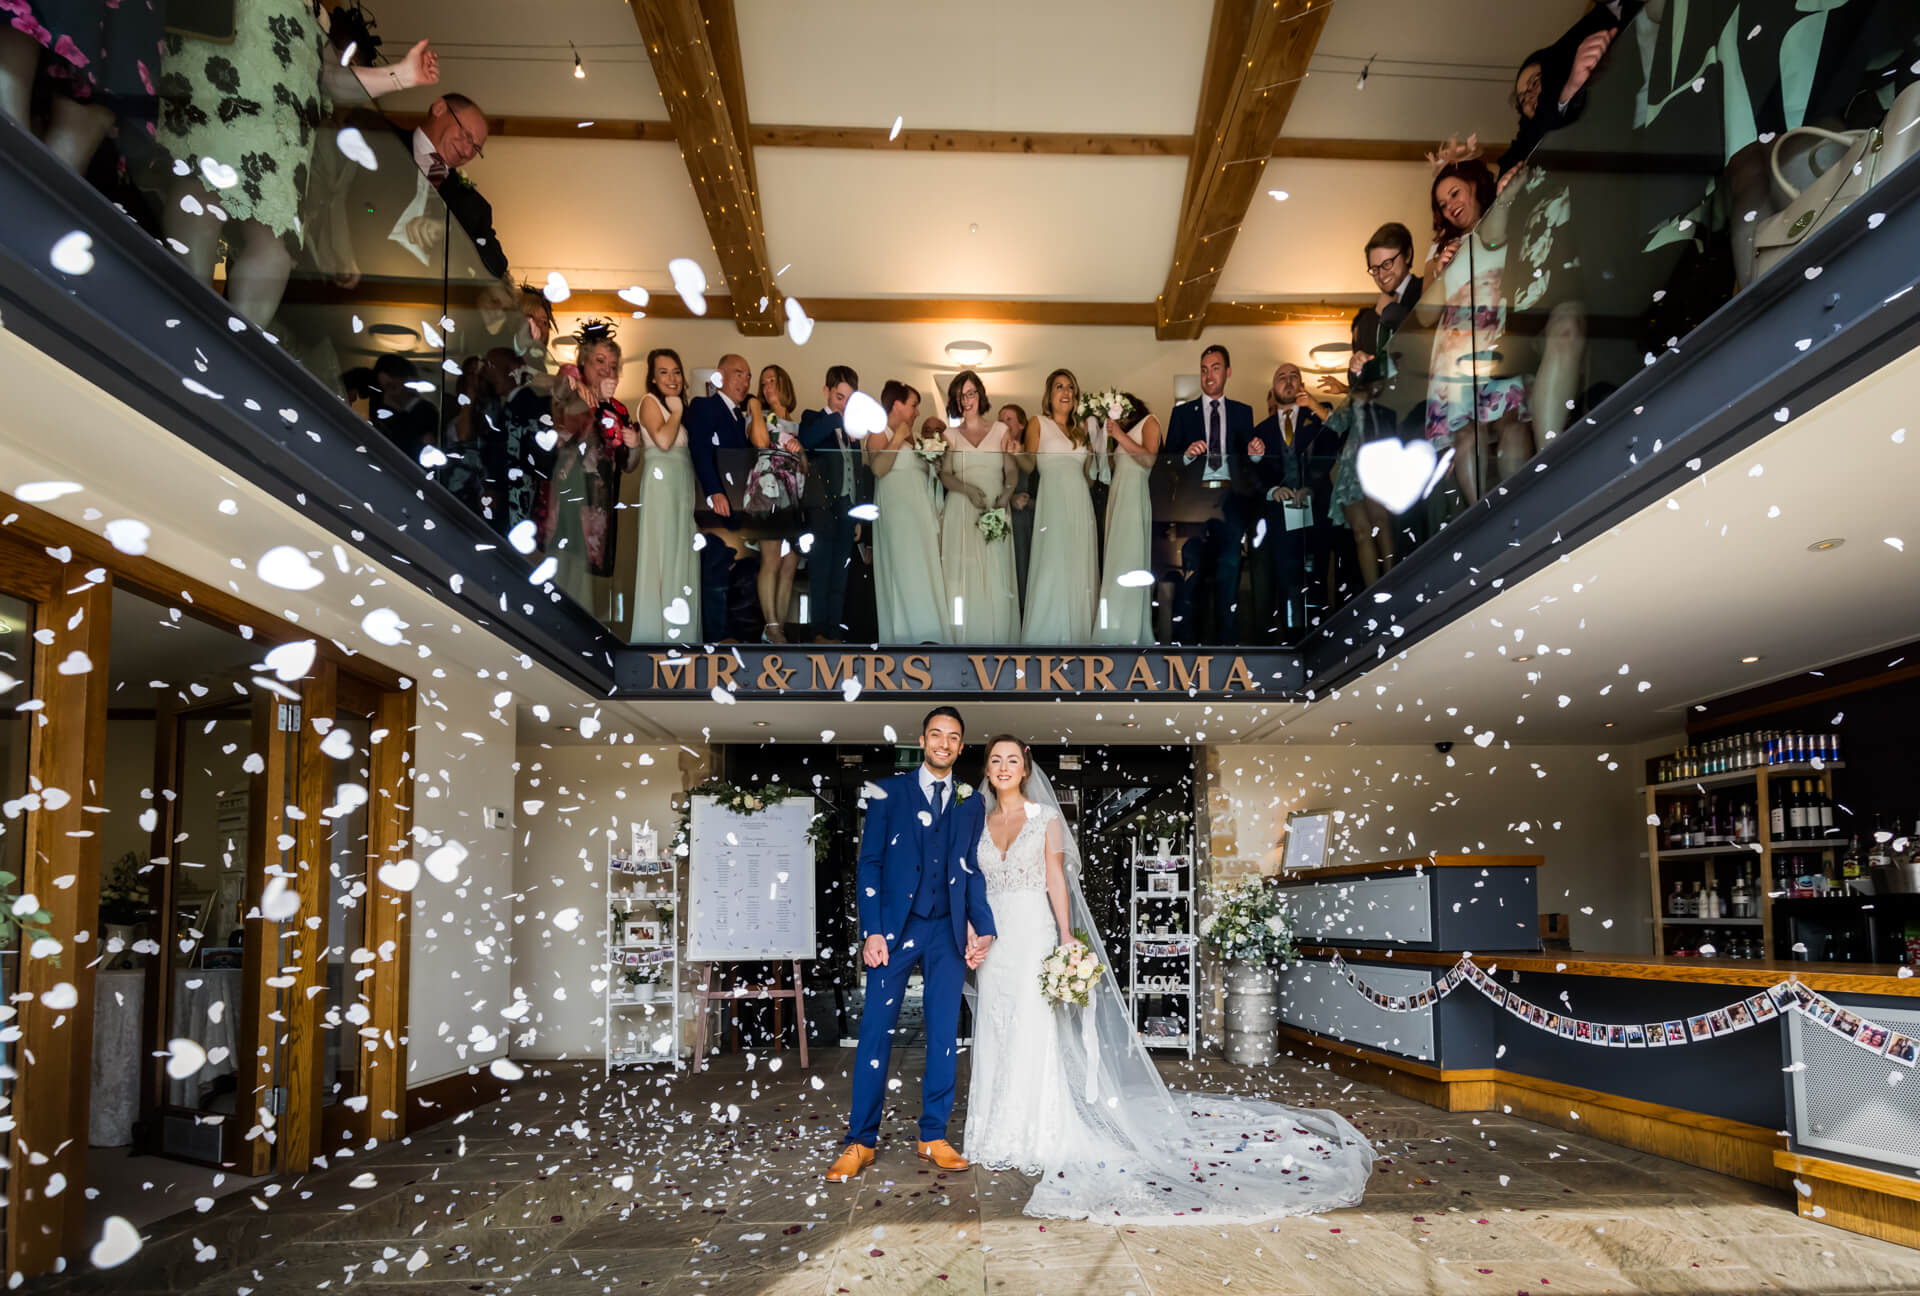 guests throw confetti down onto the couple from a balcony